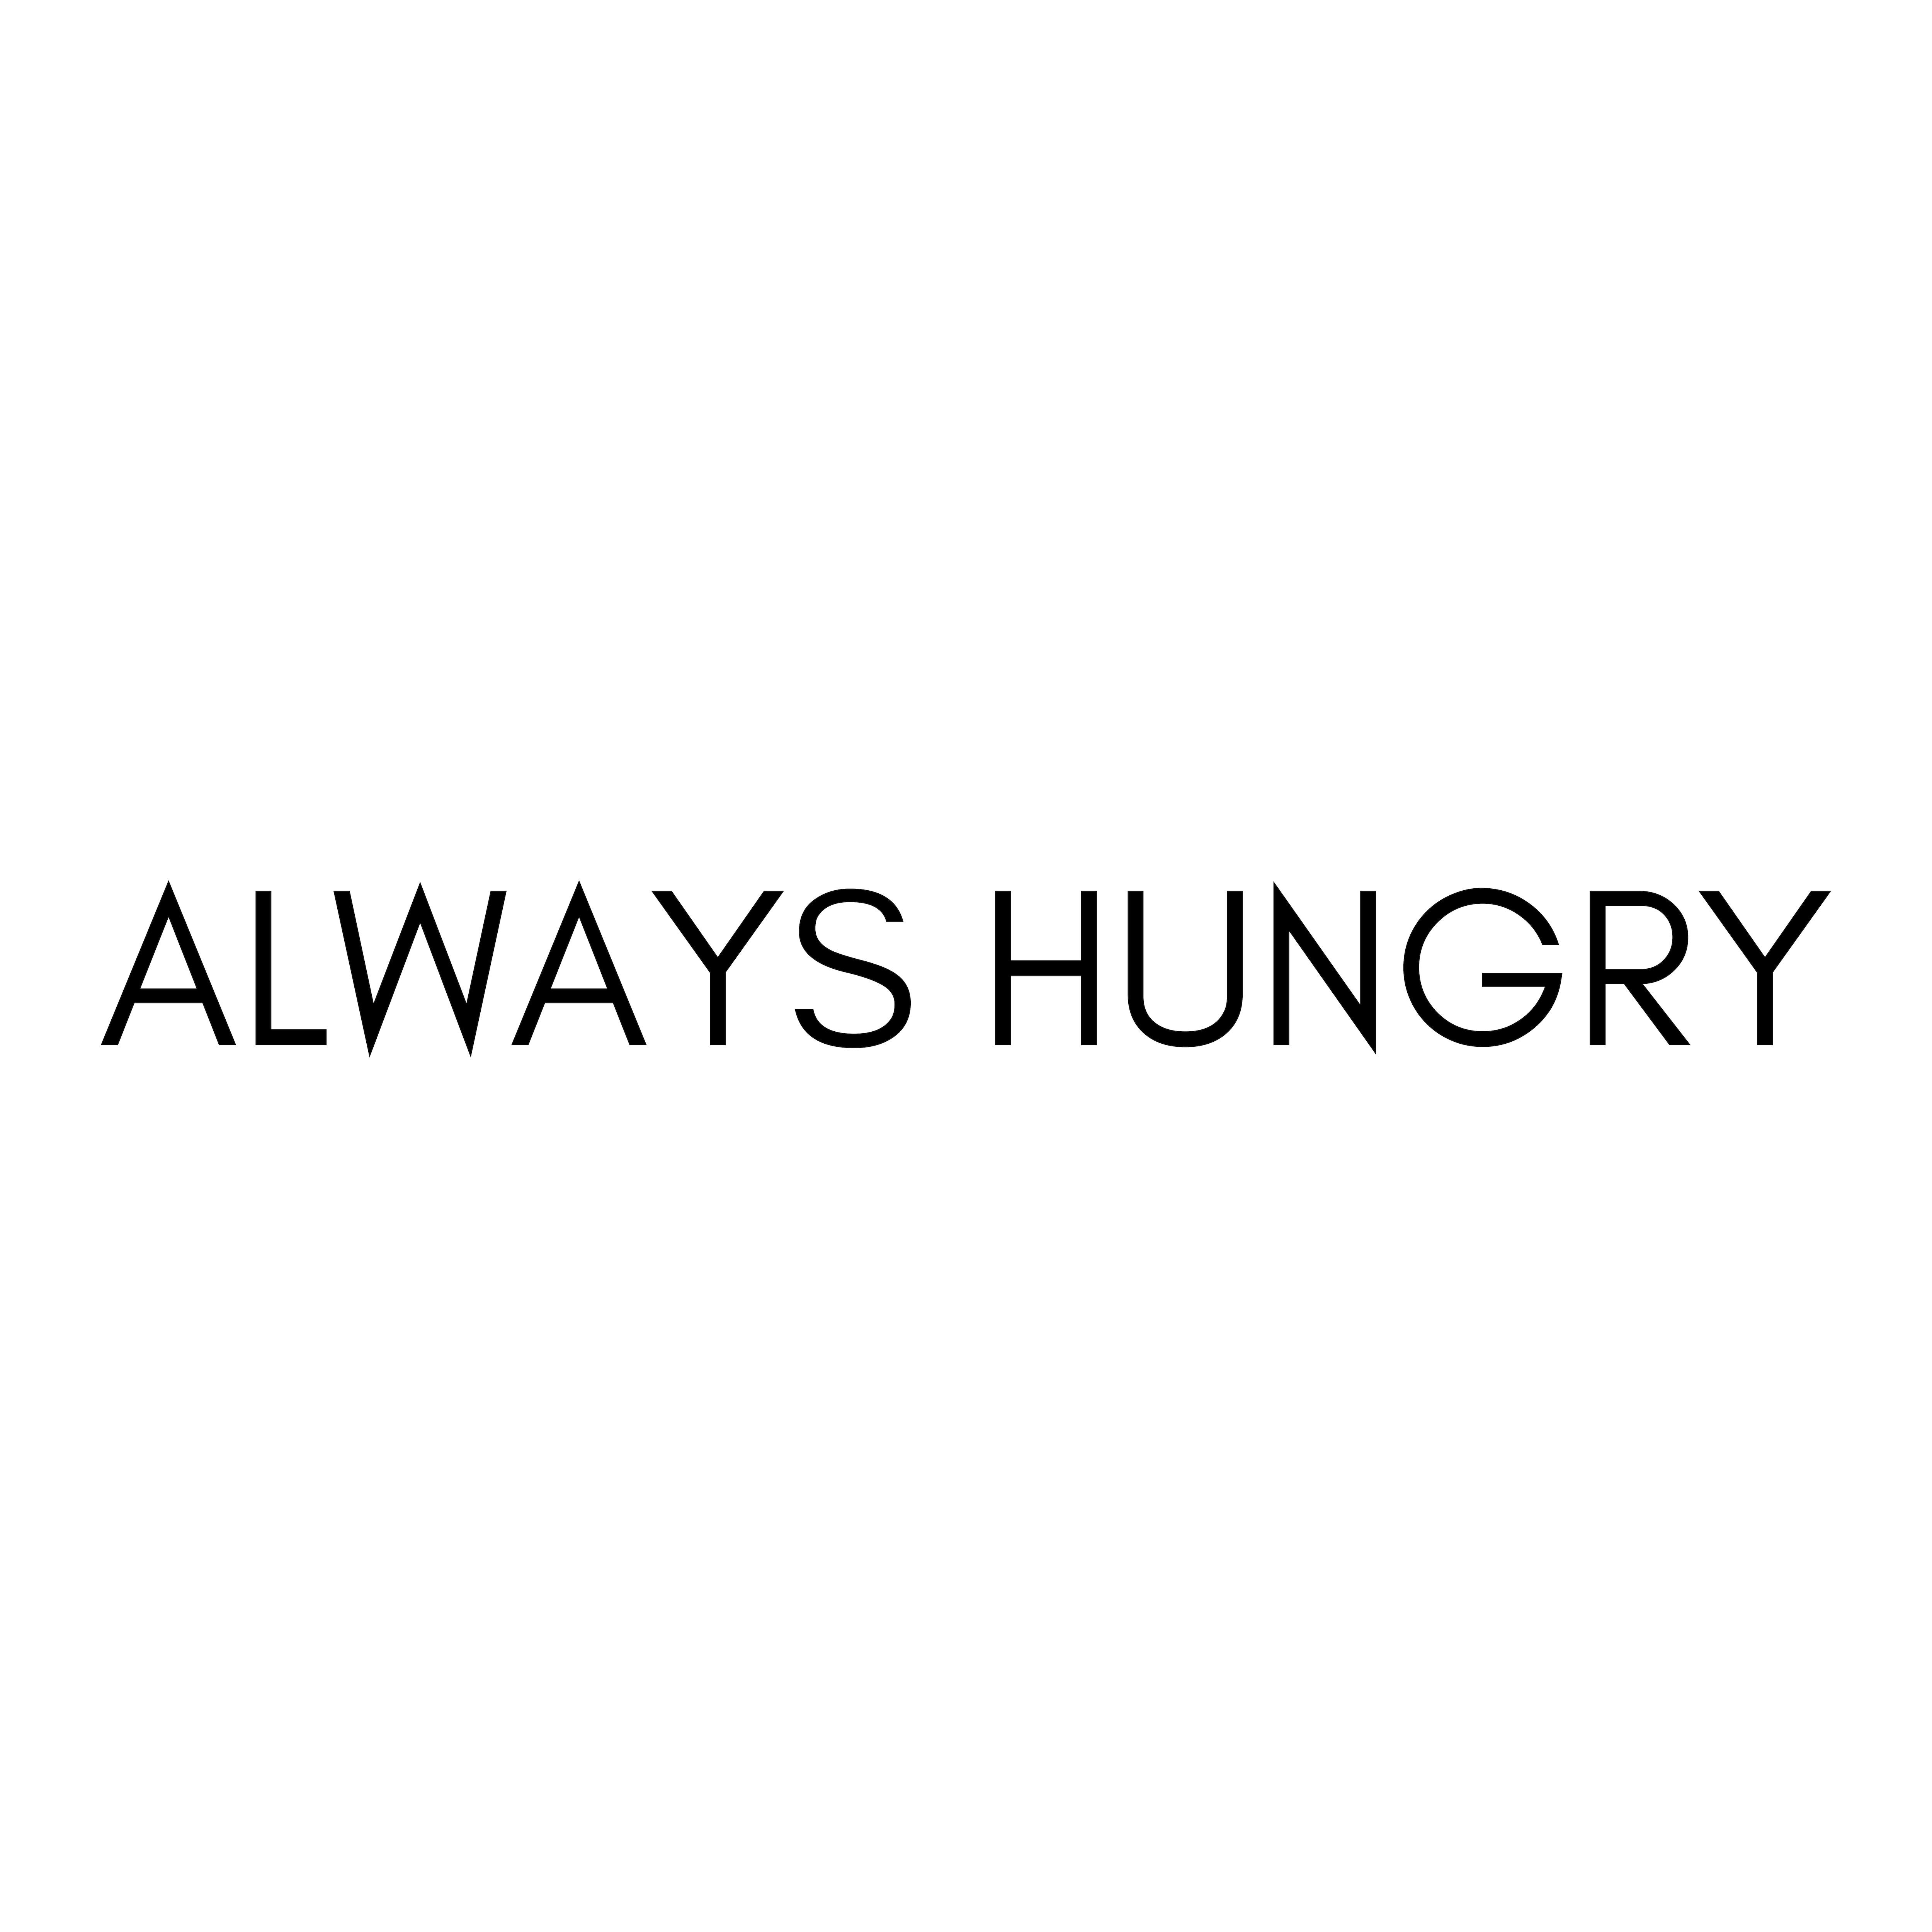 Motivational Quote Funny Food Quote Gary Vee Gary Vaynerchuk Food Quotes Funny Hungry Quotes Funny Always Hungry